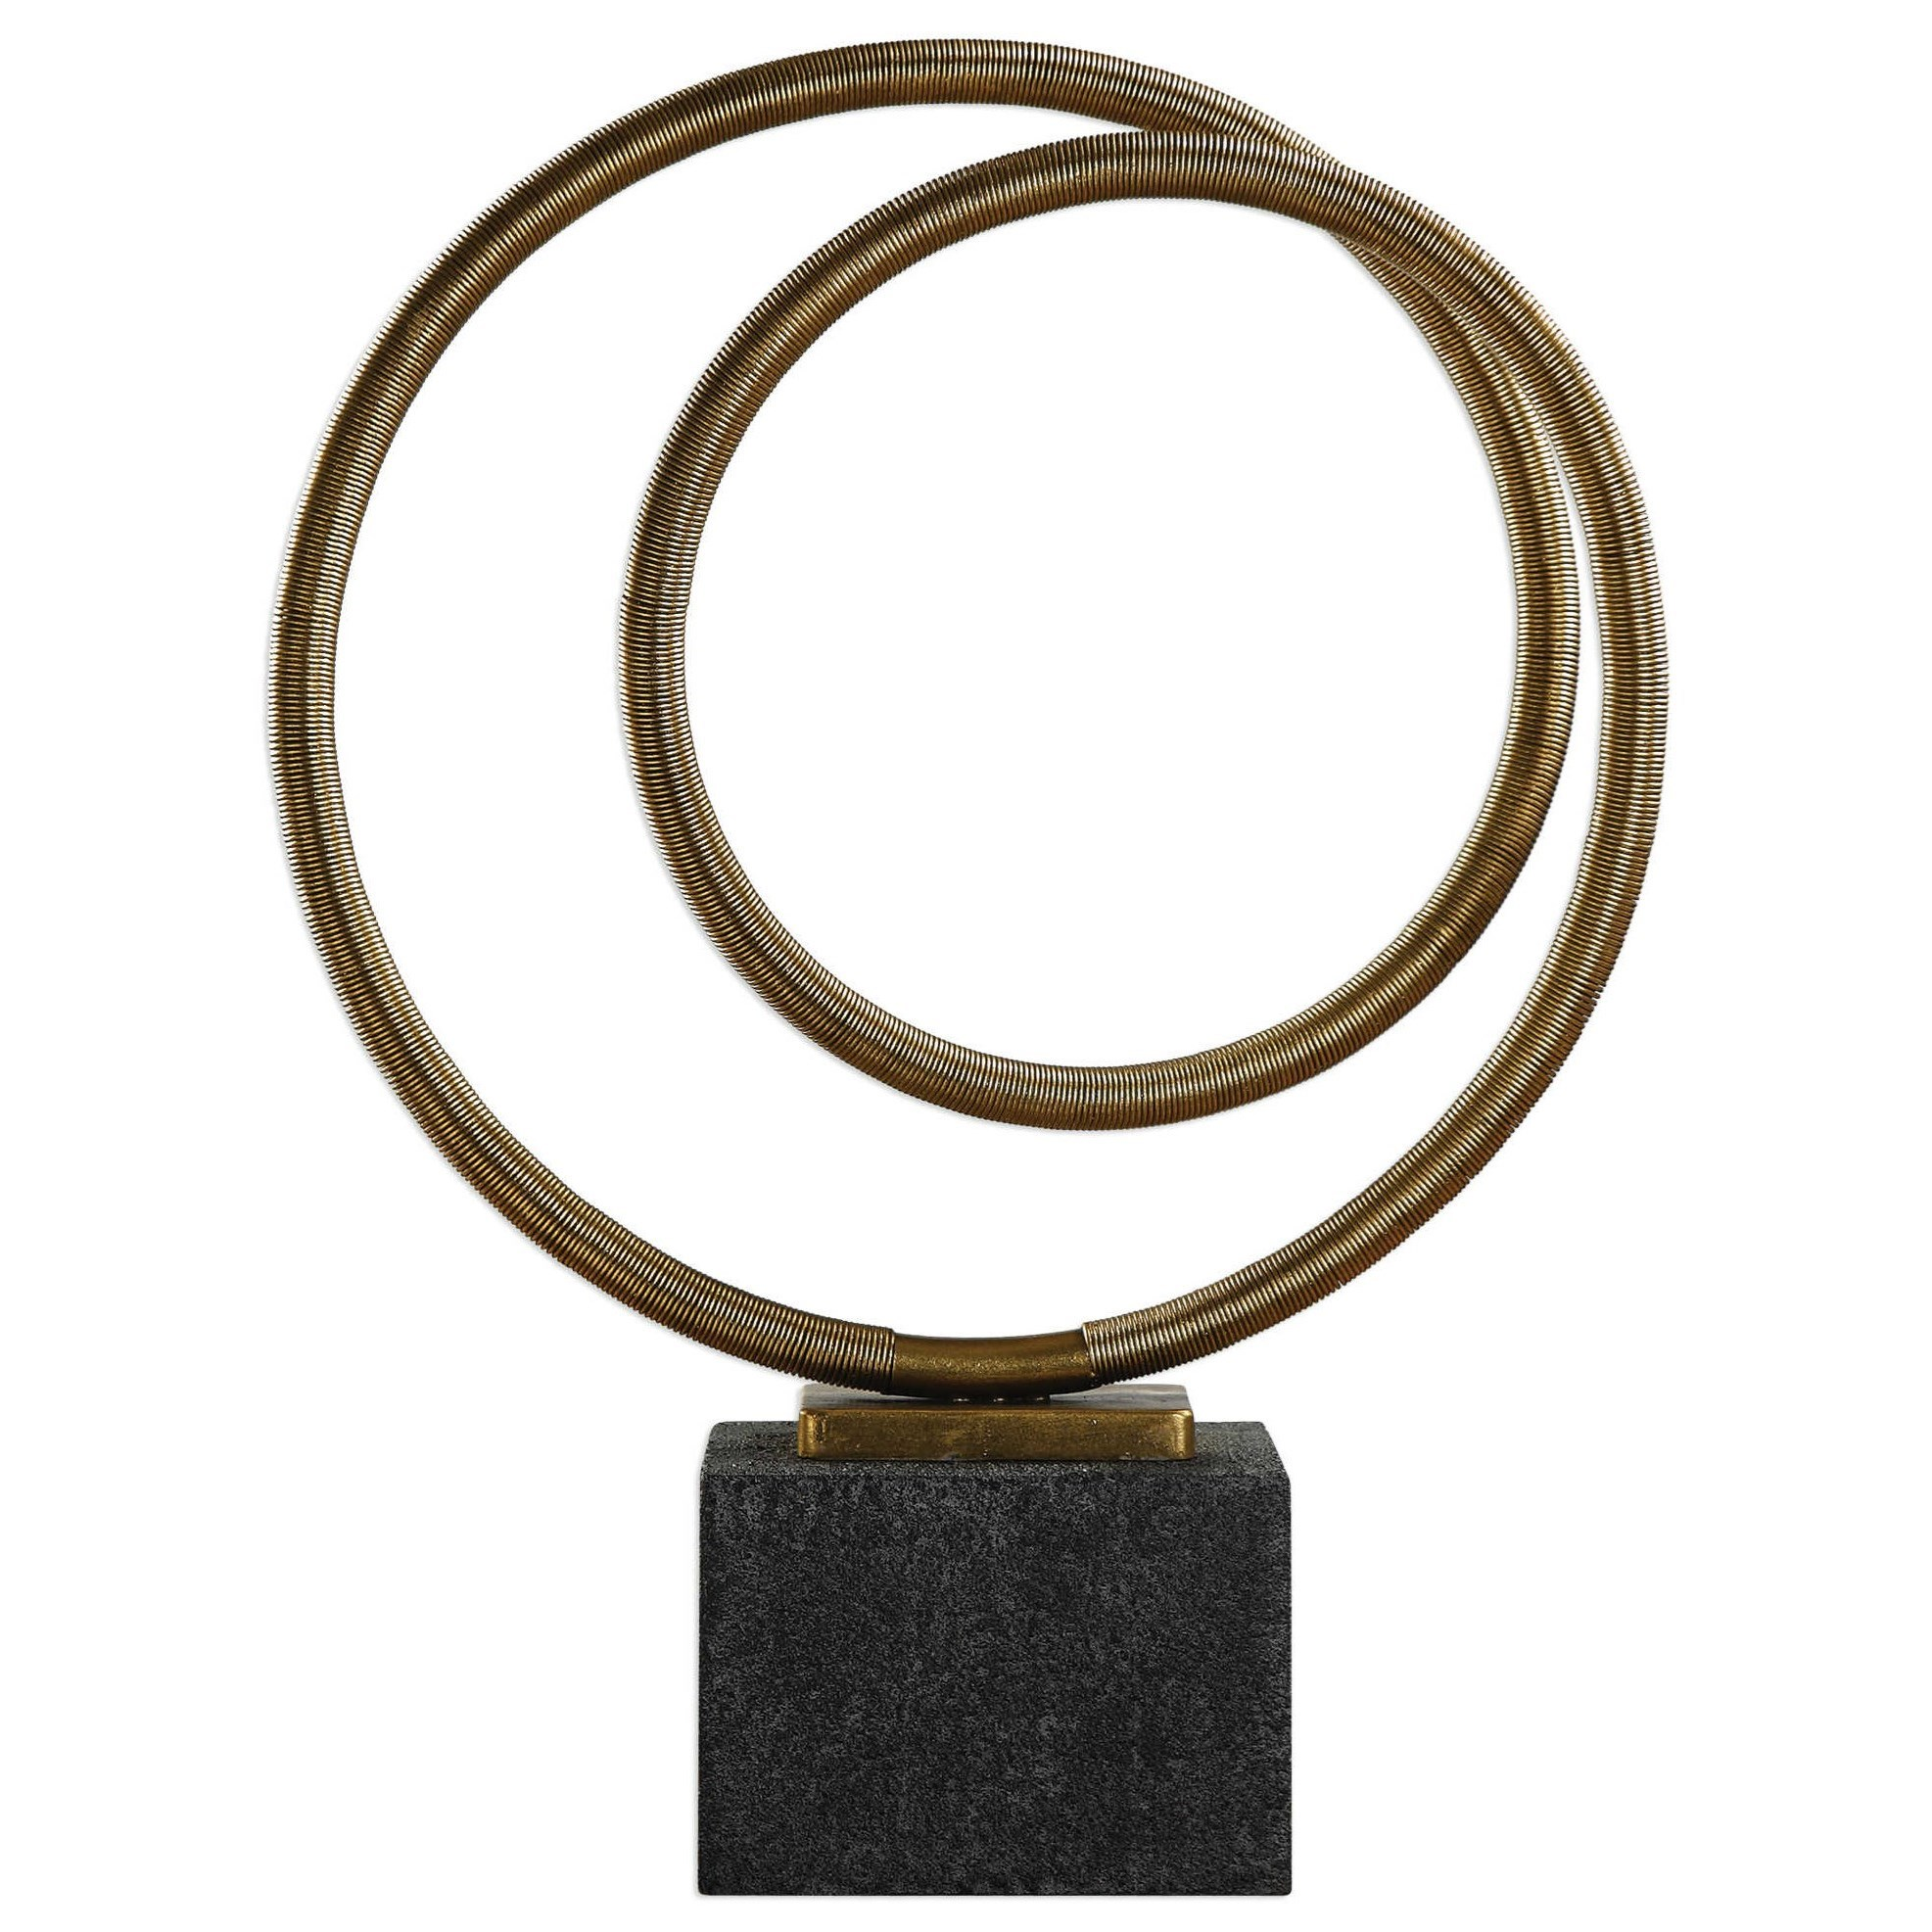 Accessories - Statues and Figurines Oja Gold Sculpture by Uttermost at Mueller Furniture